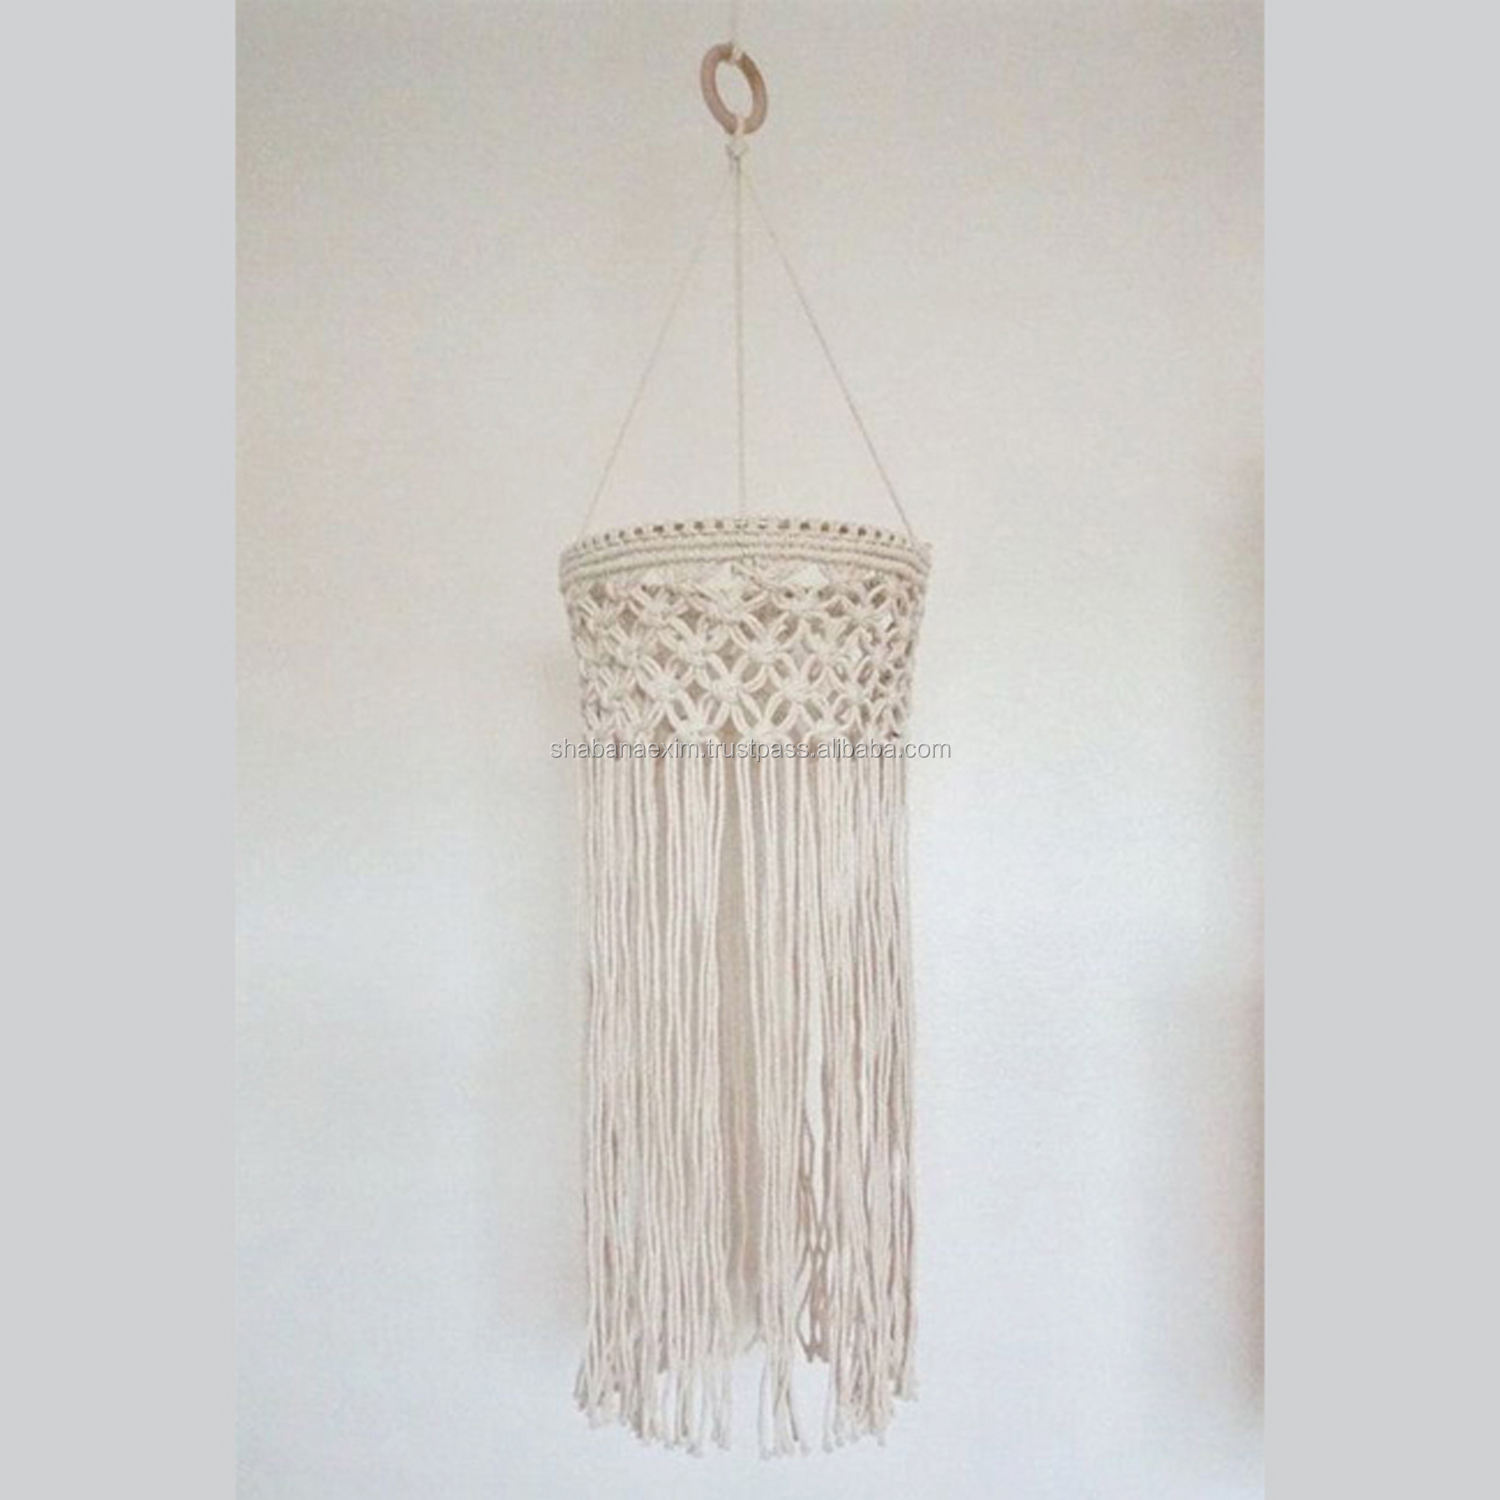 Chandelier Hanging Cotton Rope Macrame Patterns Boho Natural Lampshade Suppliers